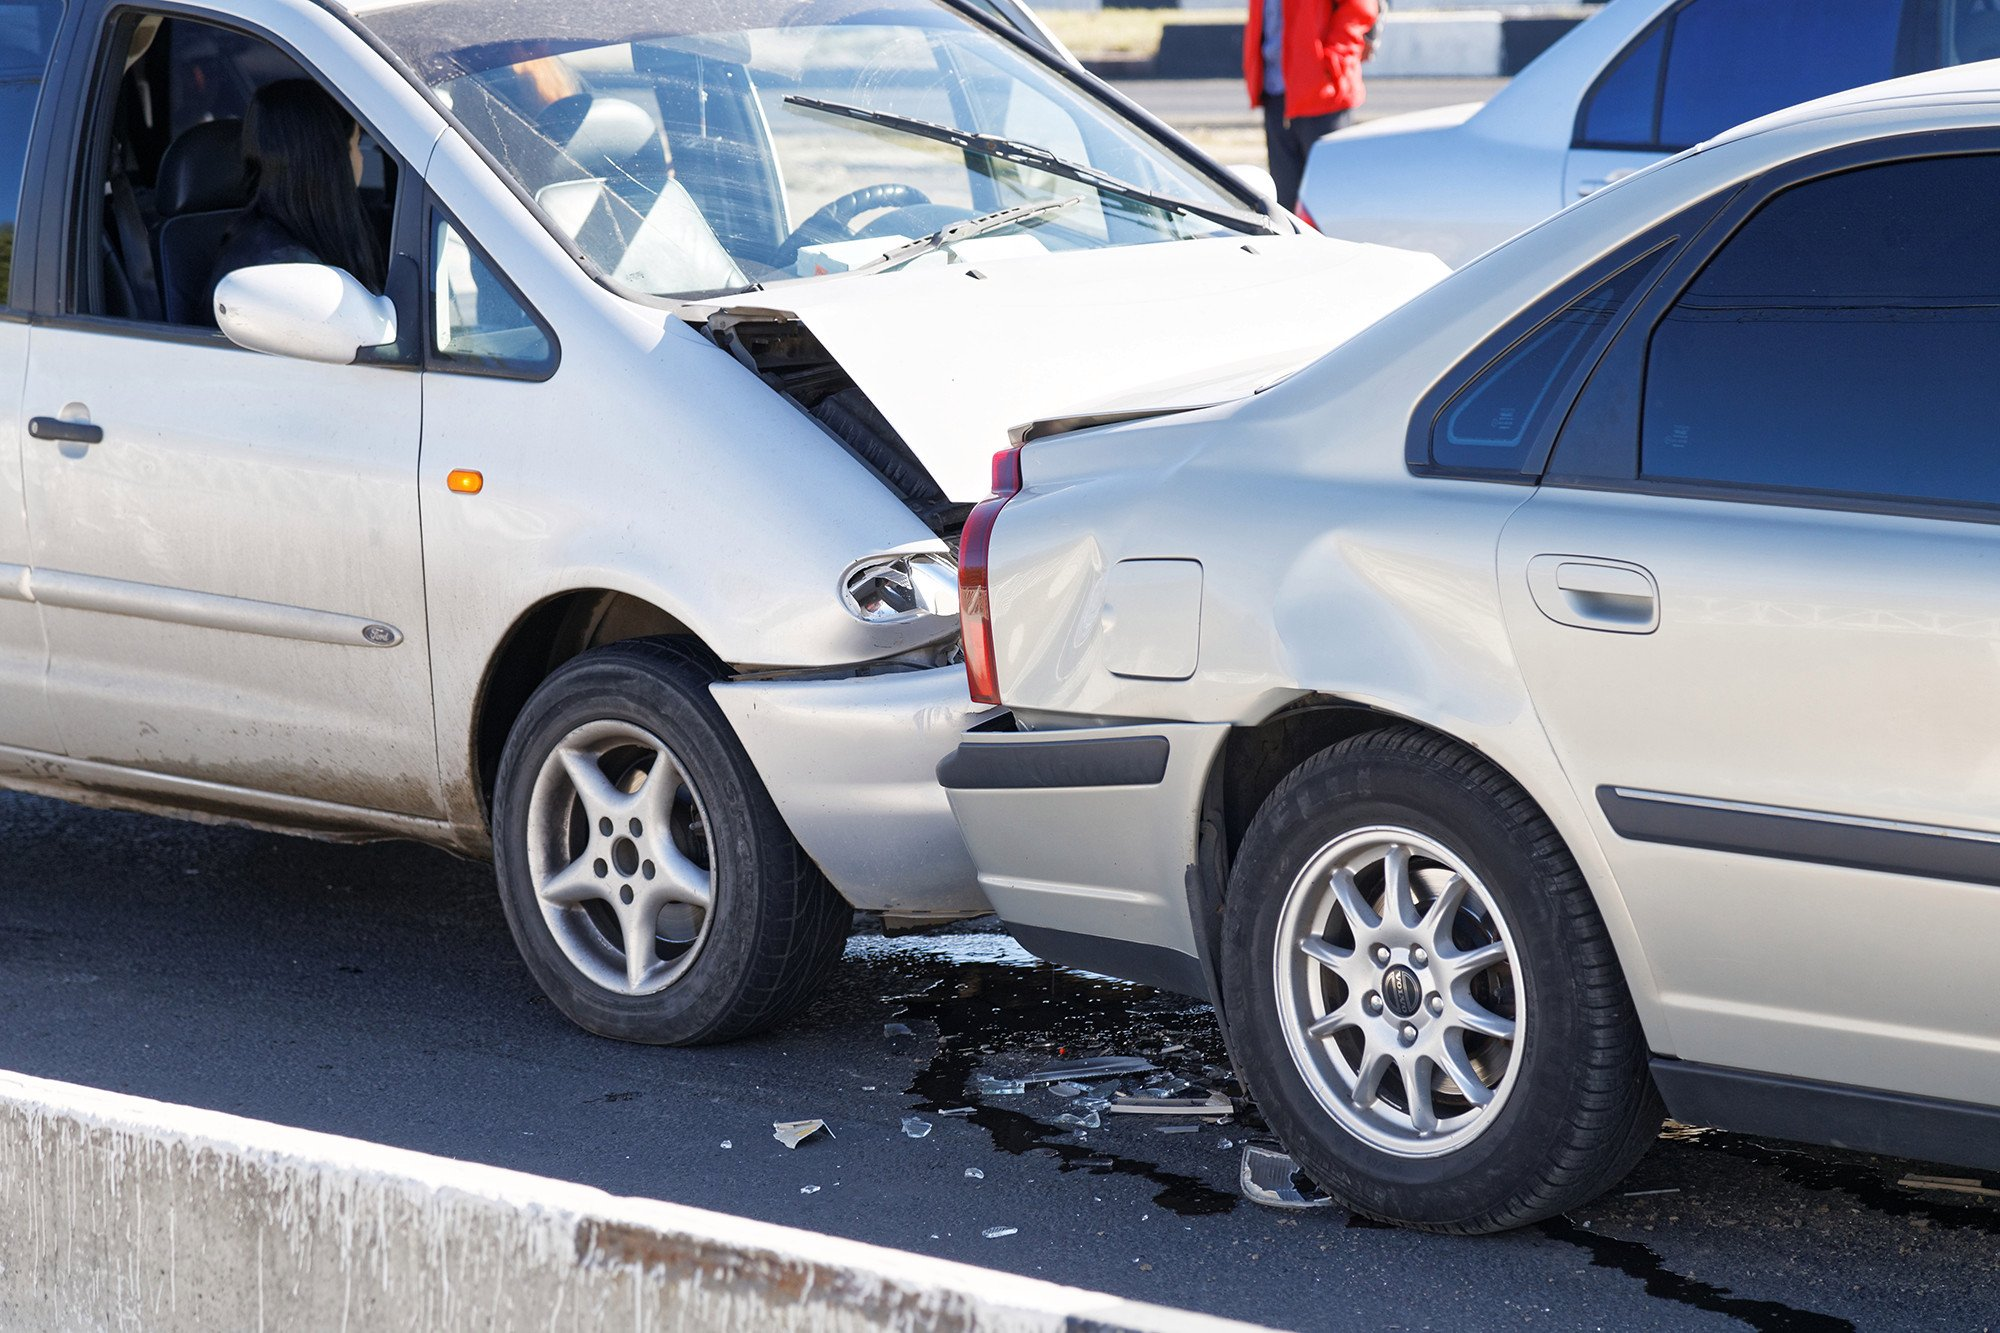 Lawmakers have yet to stiffen penalties for unlicensed drivers